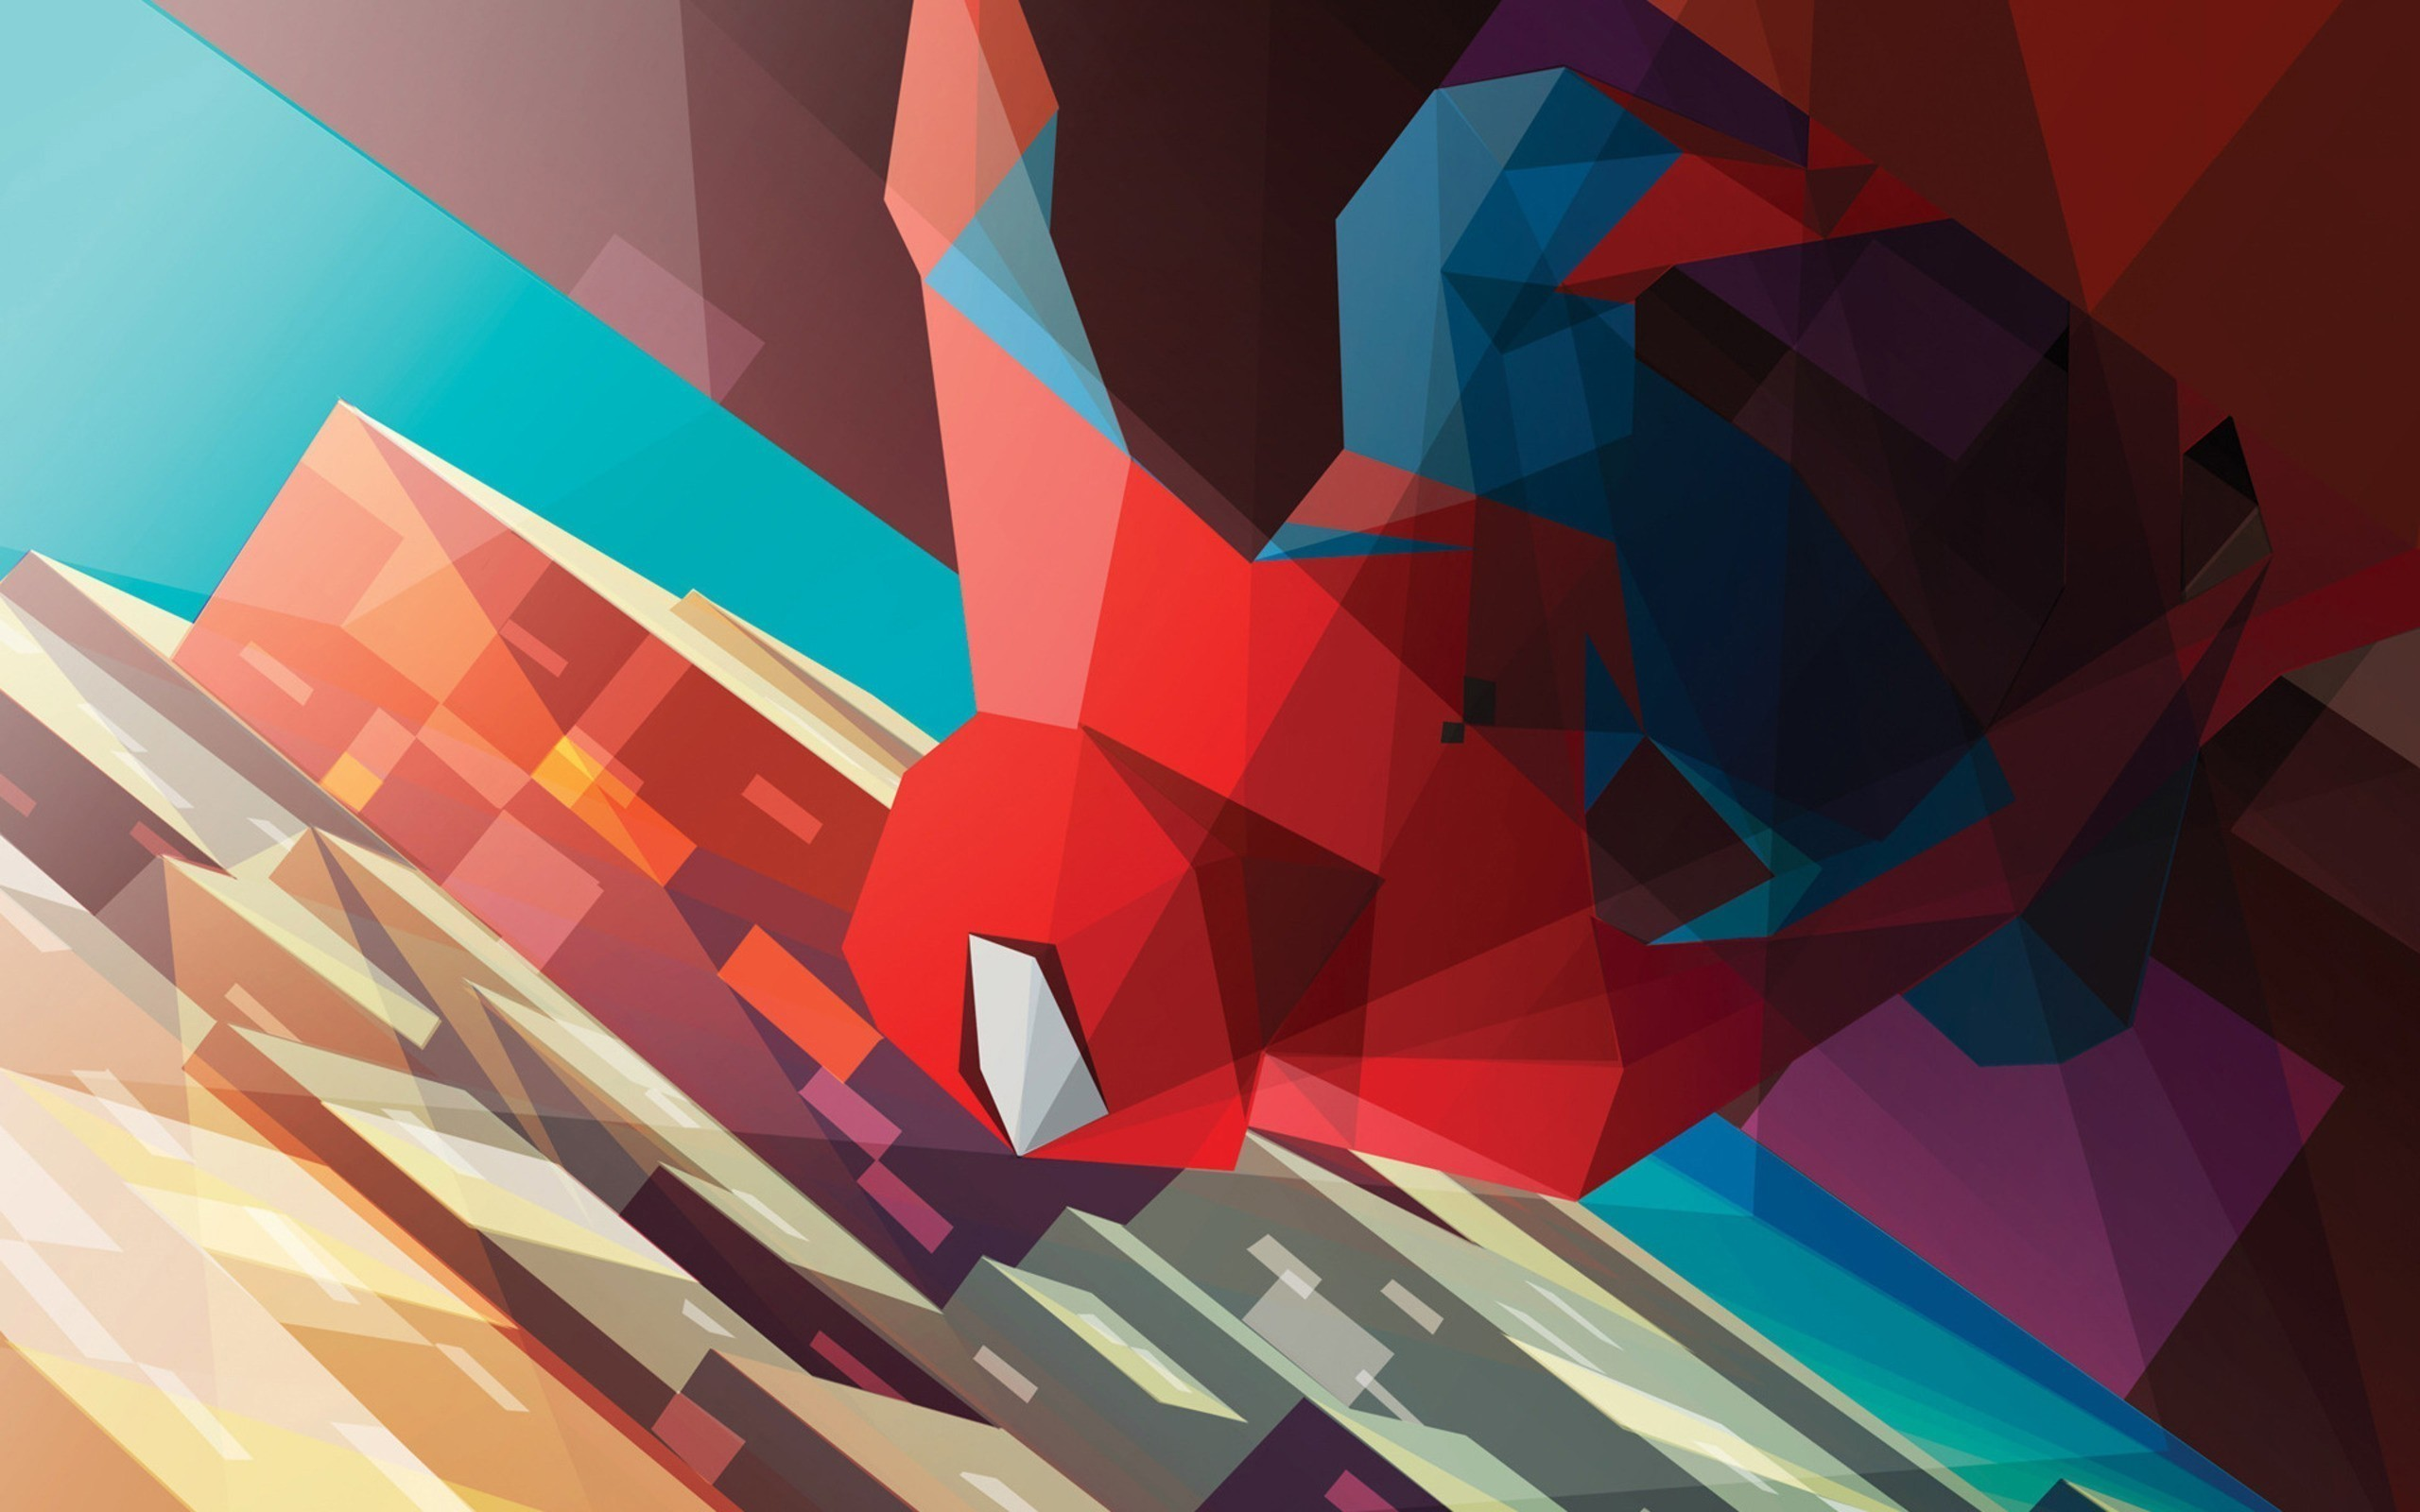 Res: 2560x1600, HD Wallpaper | Background Image ID:395602